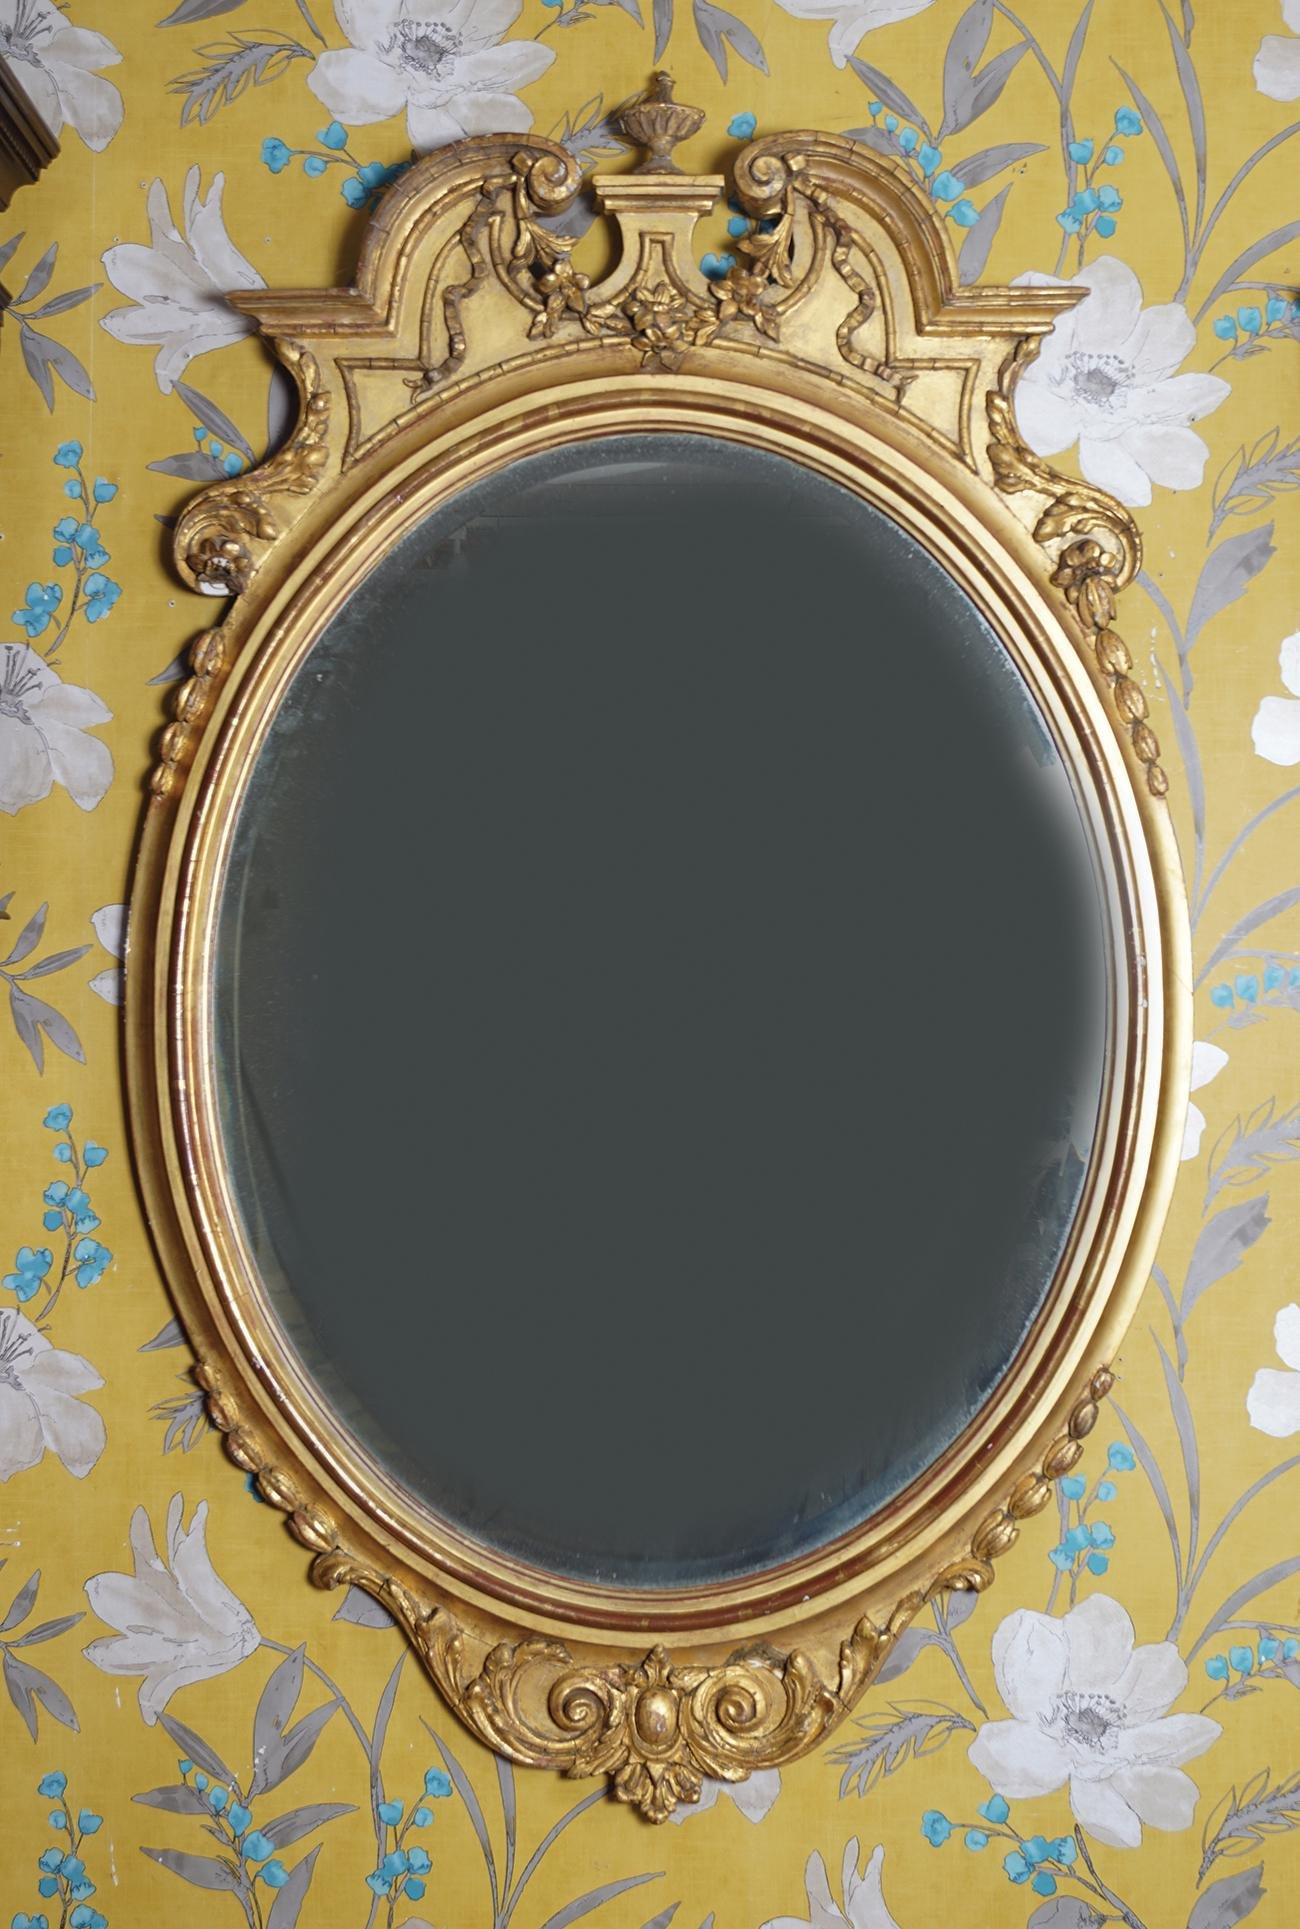 19TH-CENTURY CARVED GILTWOOD FRAMED PIER MIRROR